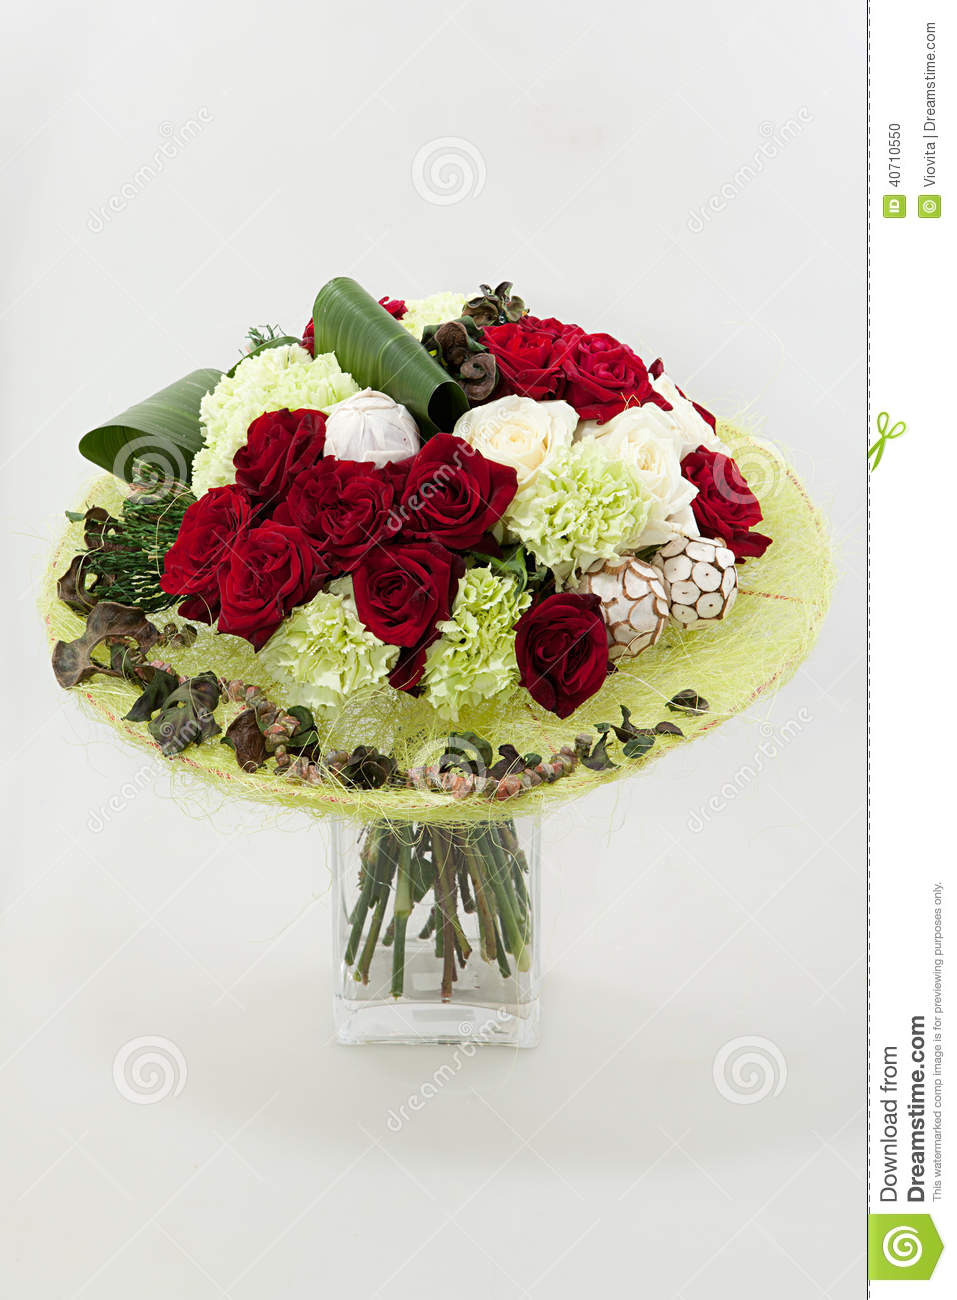 Floral composition stock photo image 40710550 for Different color roses bouquet